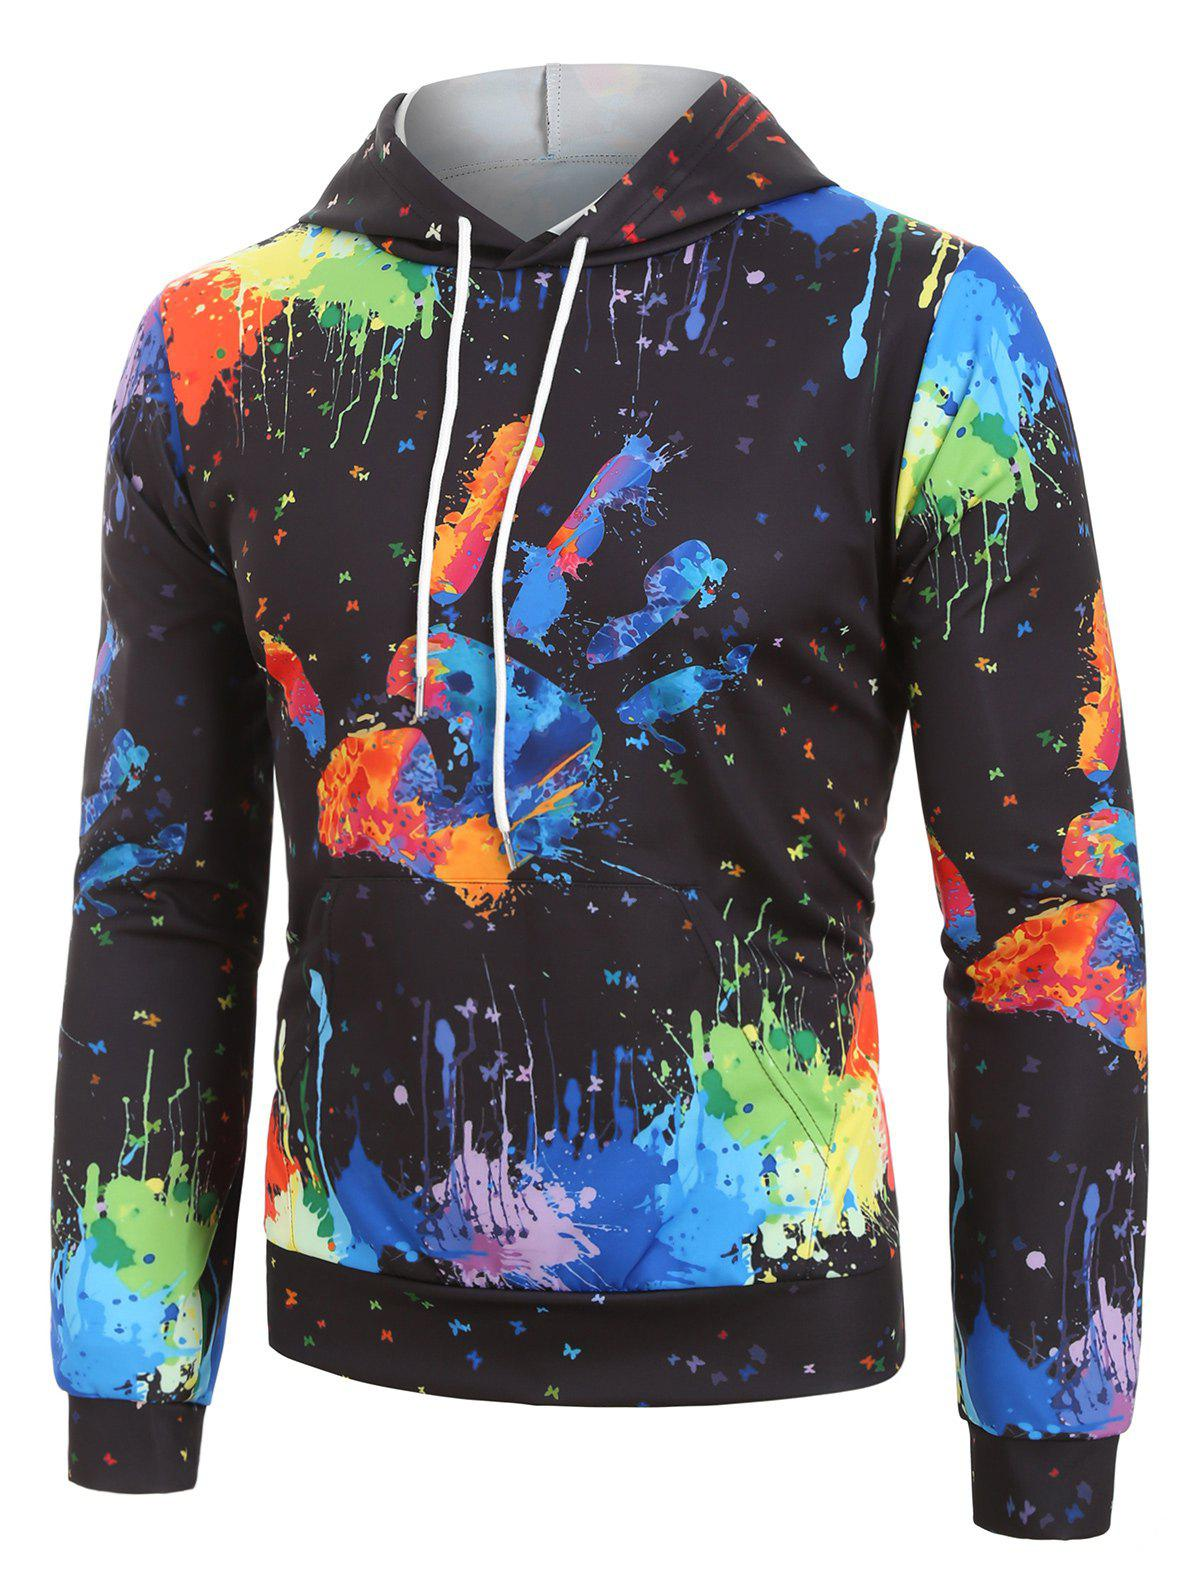 Splatter Paint Hand Graphic Front Pocket Drawstring Hoodie - multicolor XS